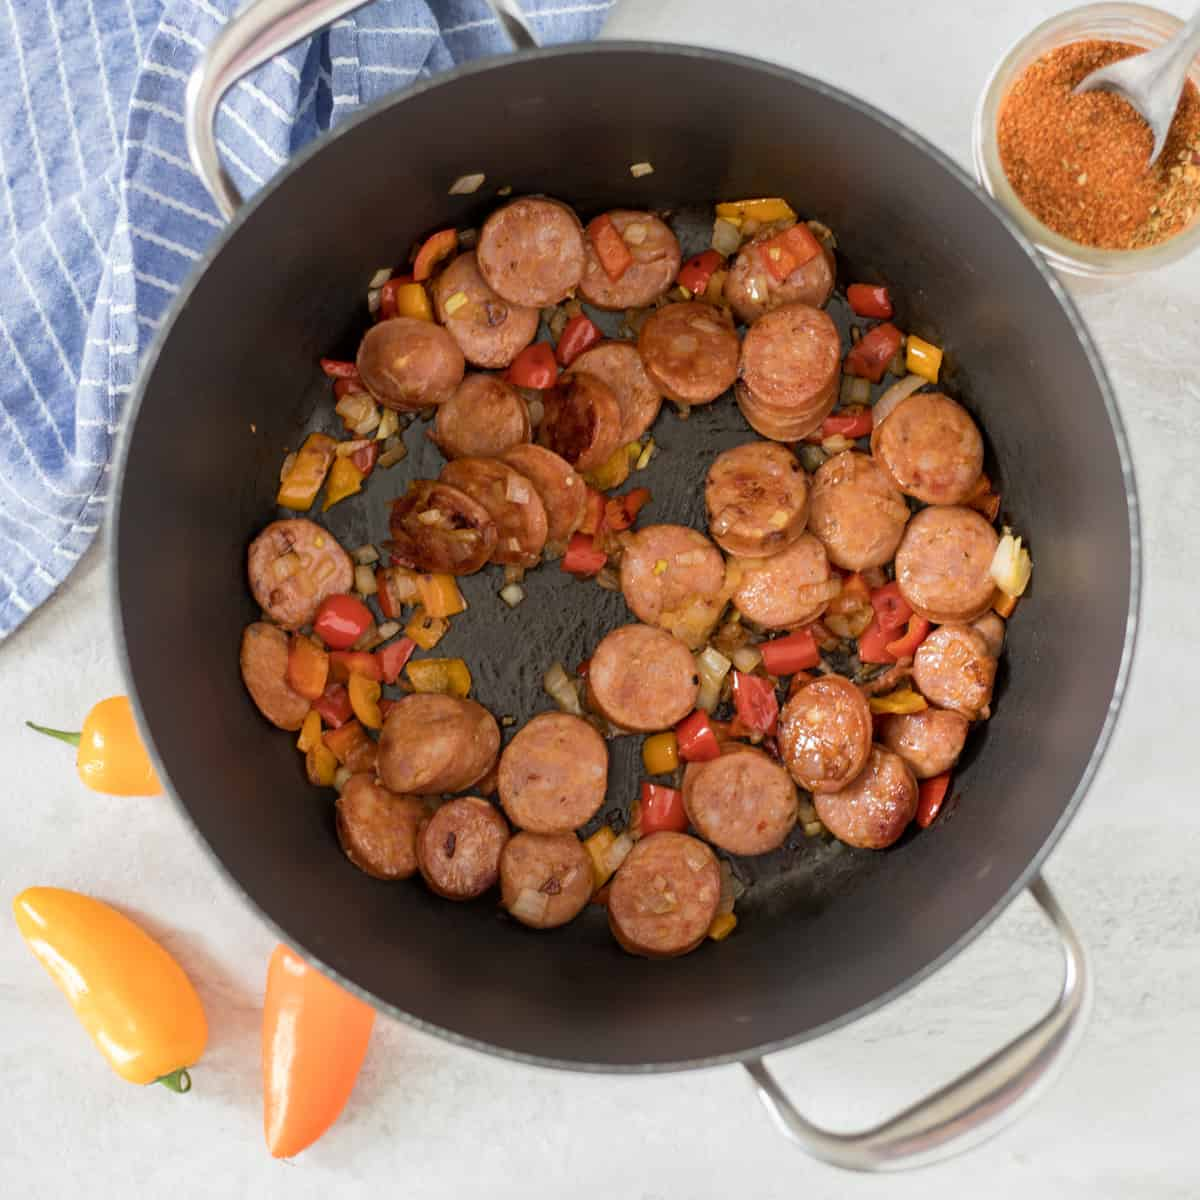 Sausage, peppers, and onions sauteed in large stock pan.